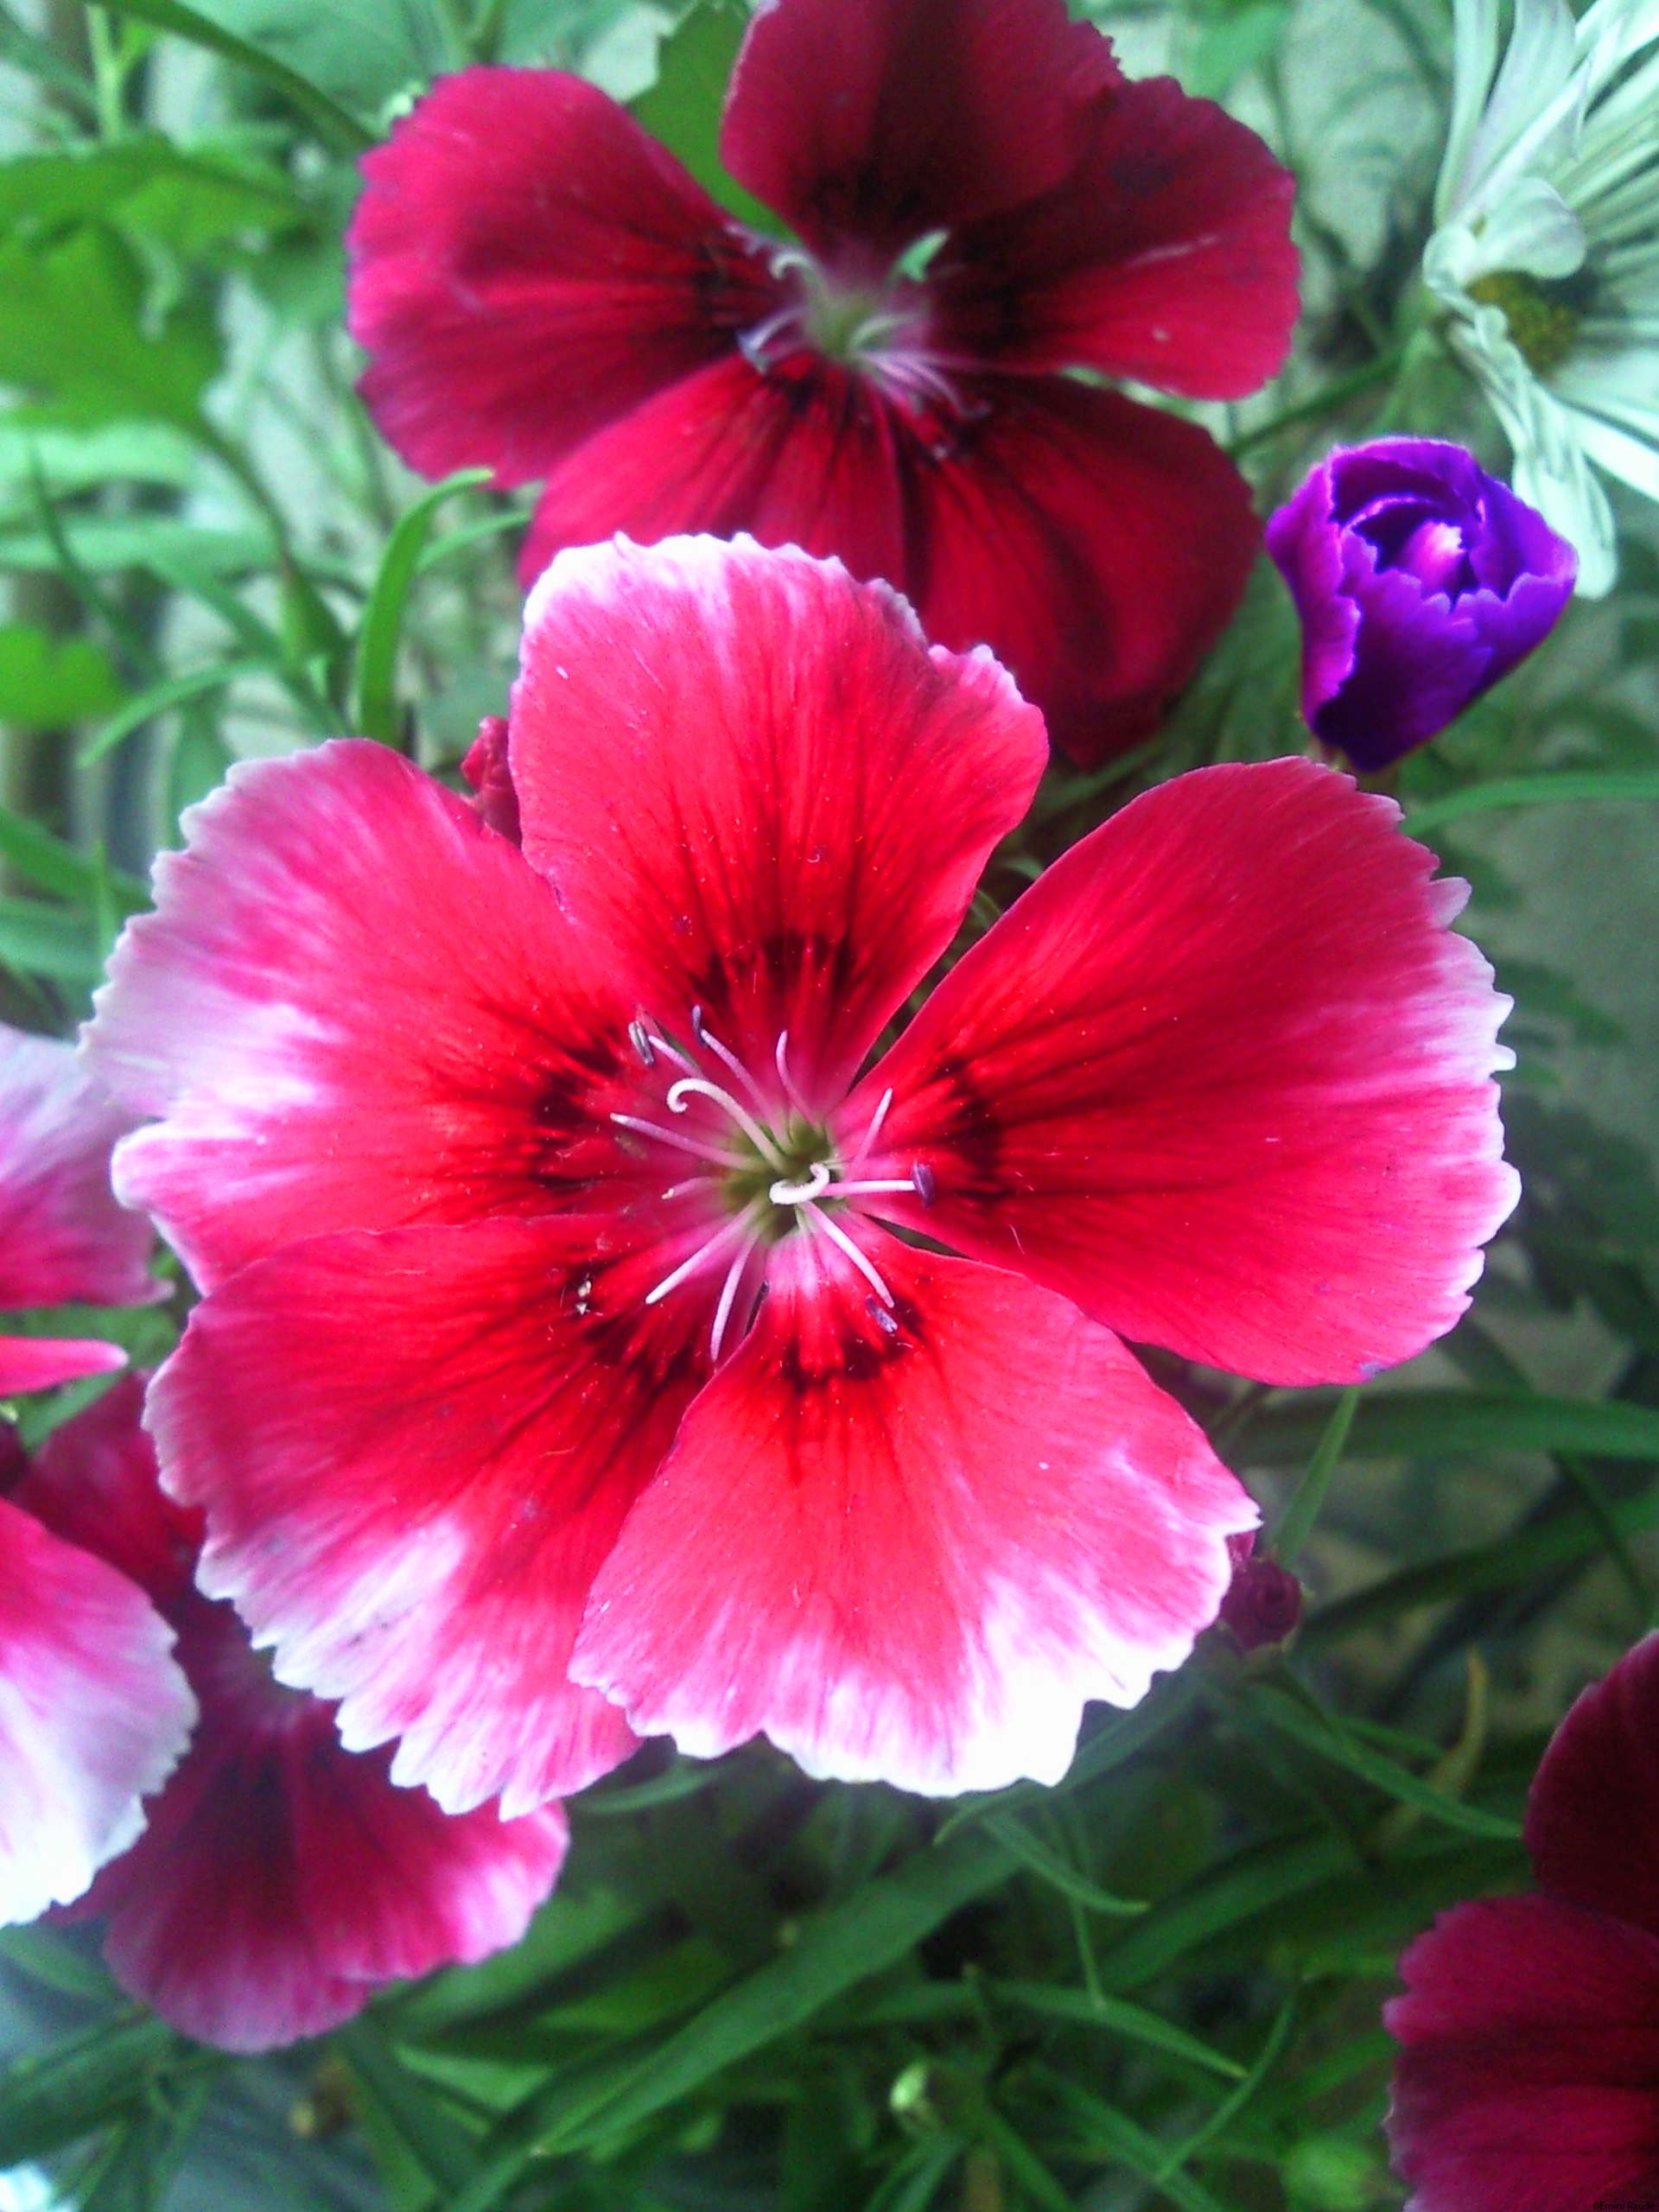 Free photo colorful flower pretty red vivid free download colorful flower izmirmasajfo